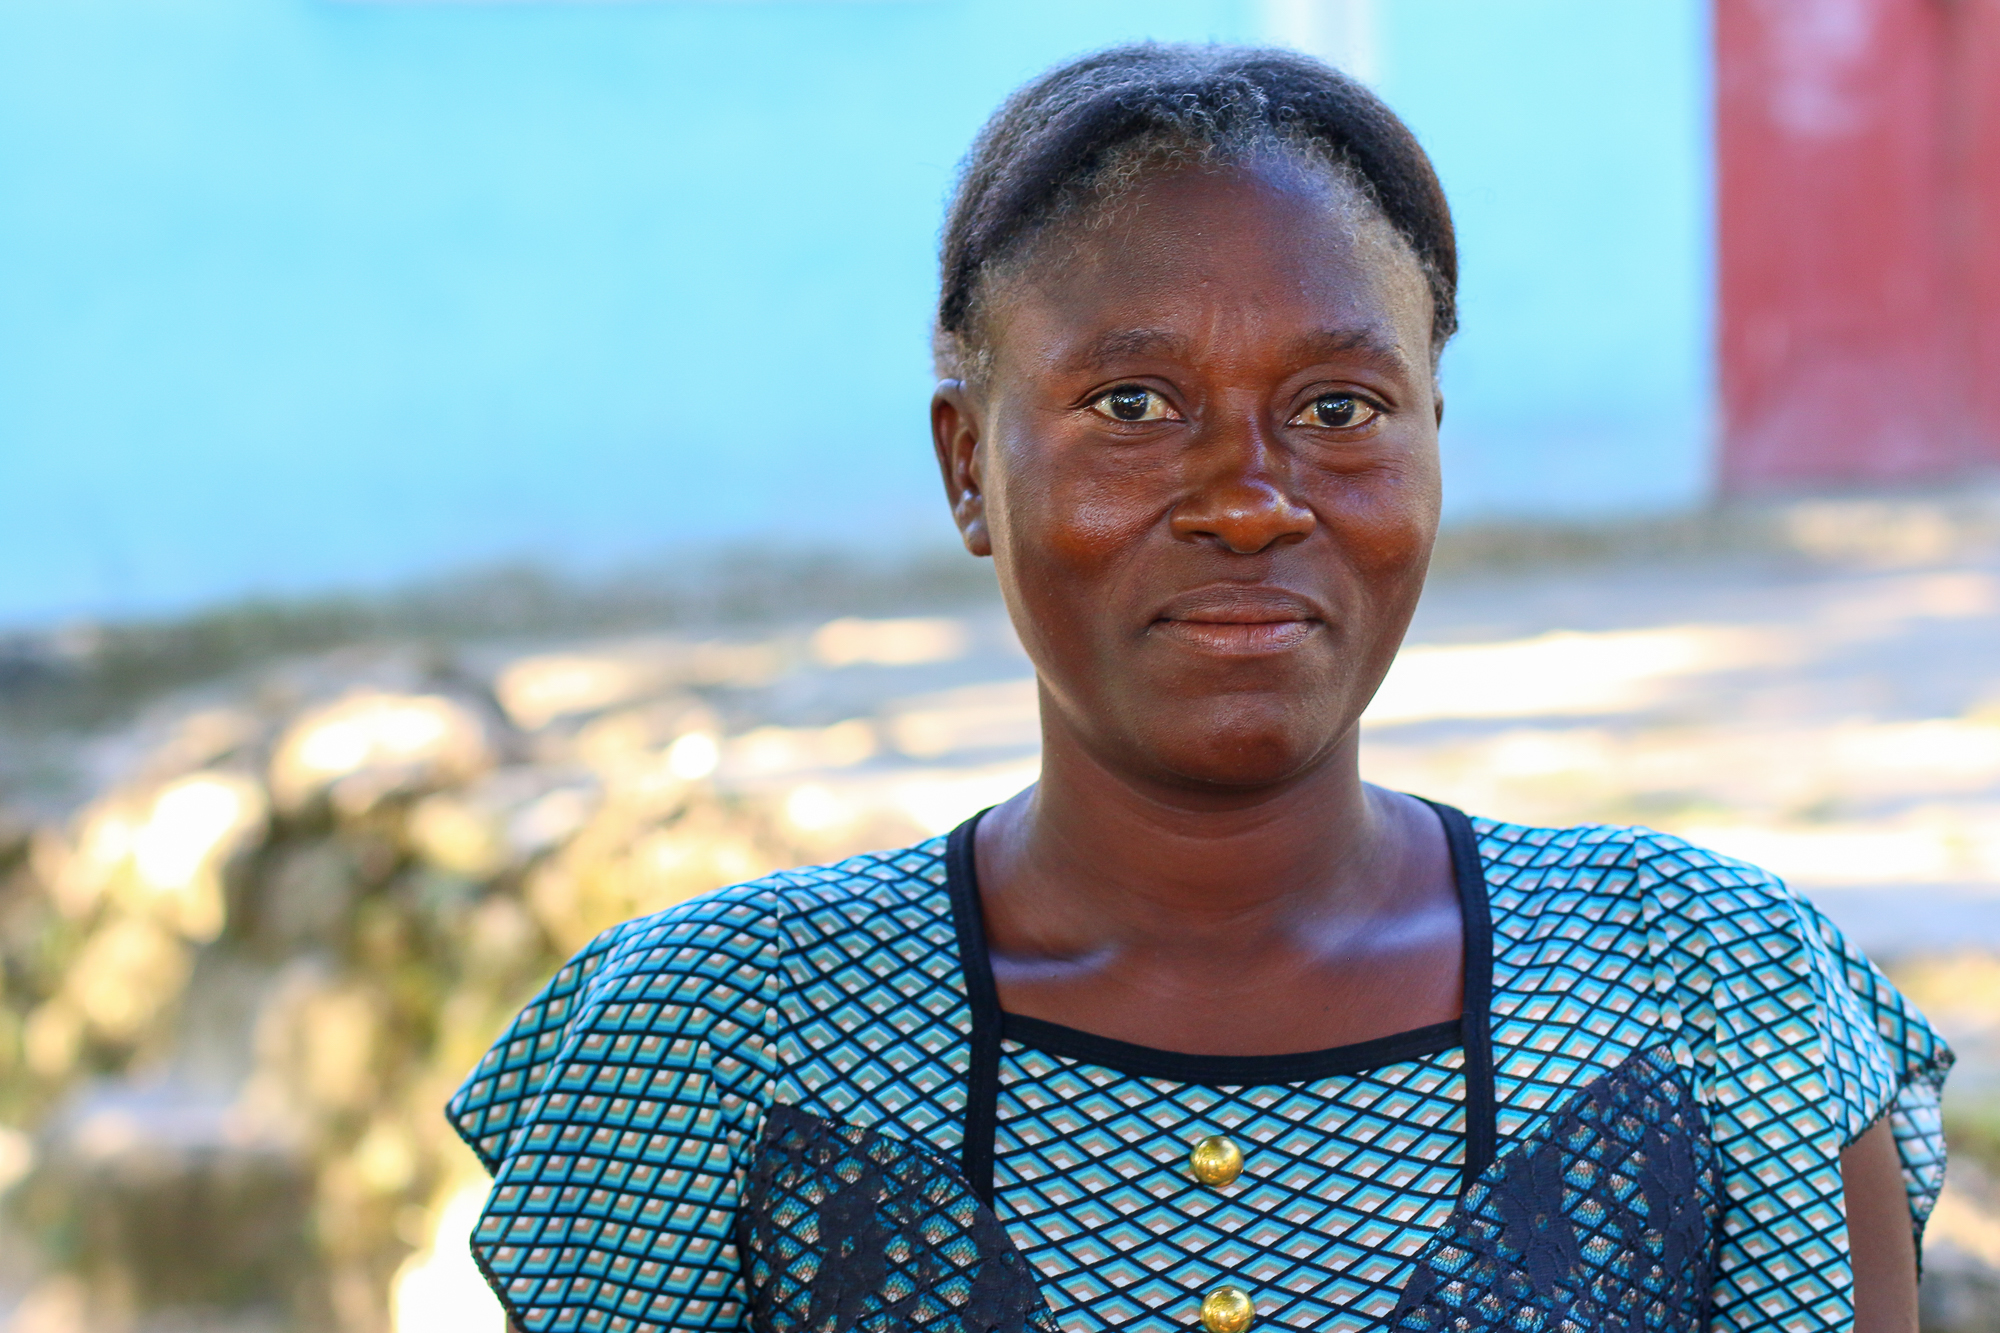 Philemond Remise received staple foods like rice and beans, egg-laying chickens, barbed wire, and training to build soil conservation structures in her garden, all of which helped her start producing food for her family again after Hurricane Matthew.